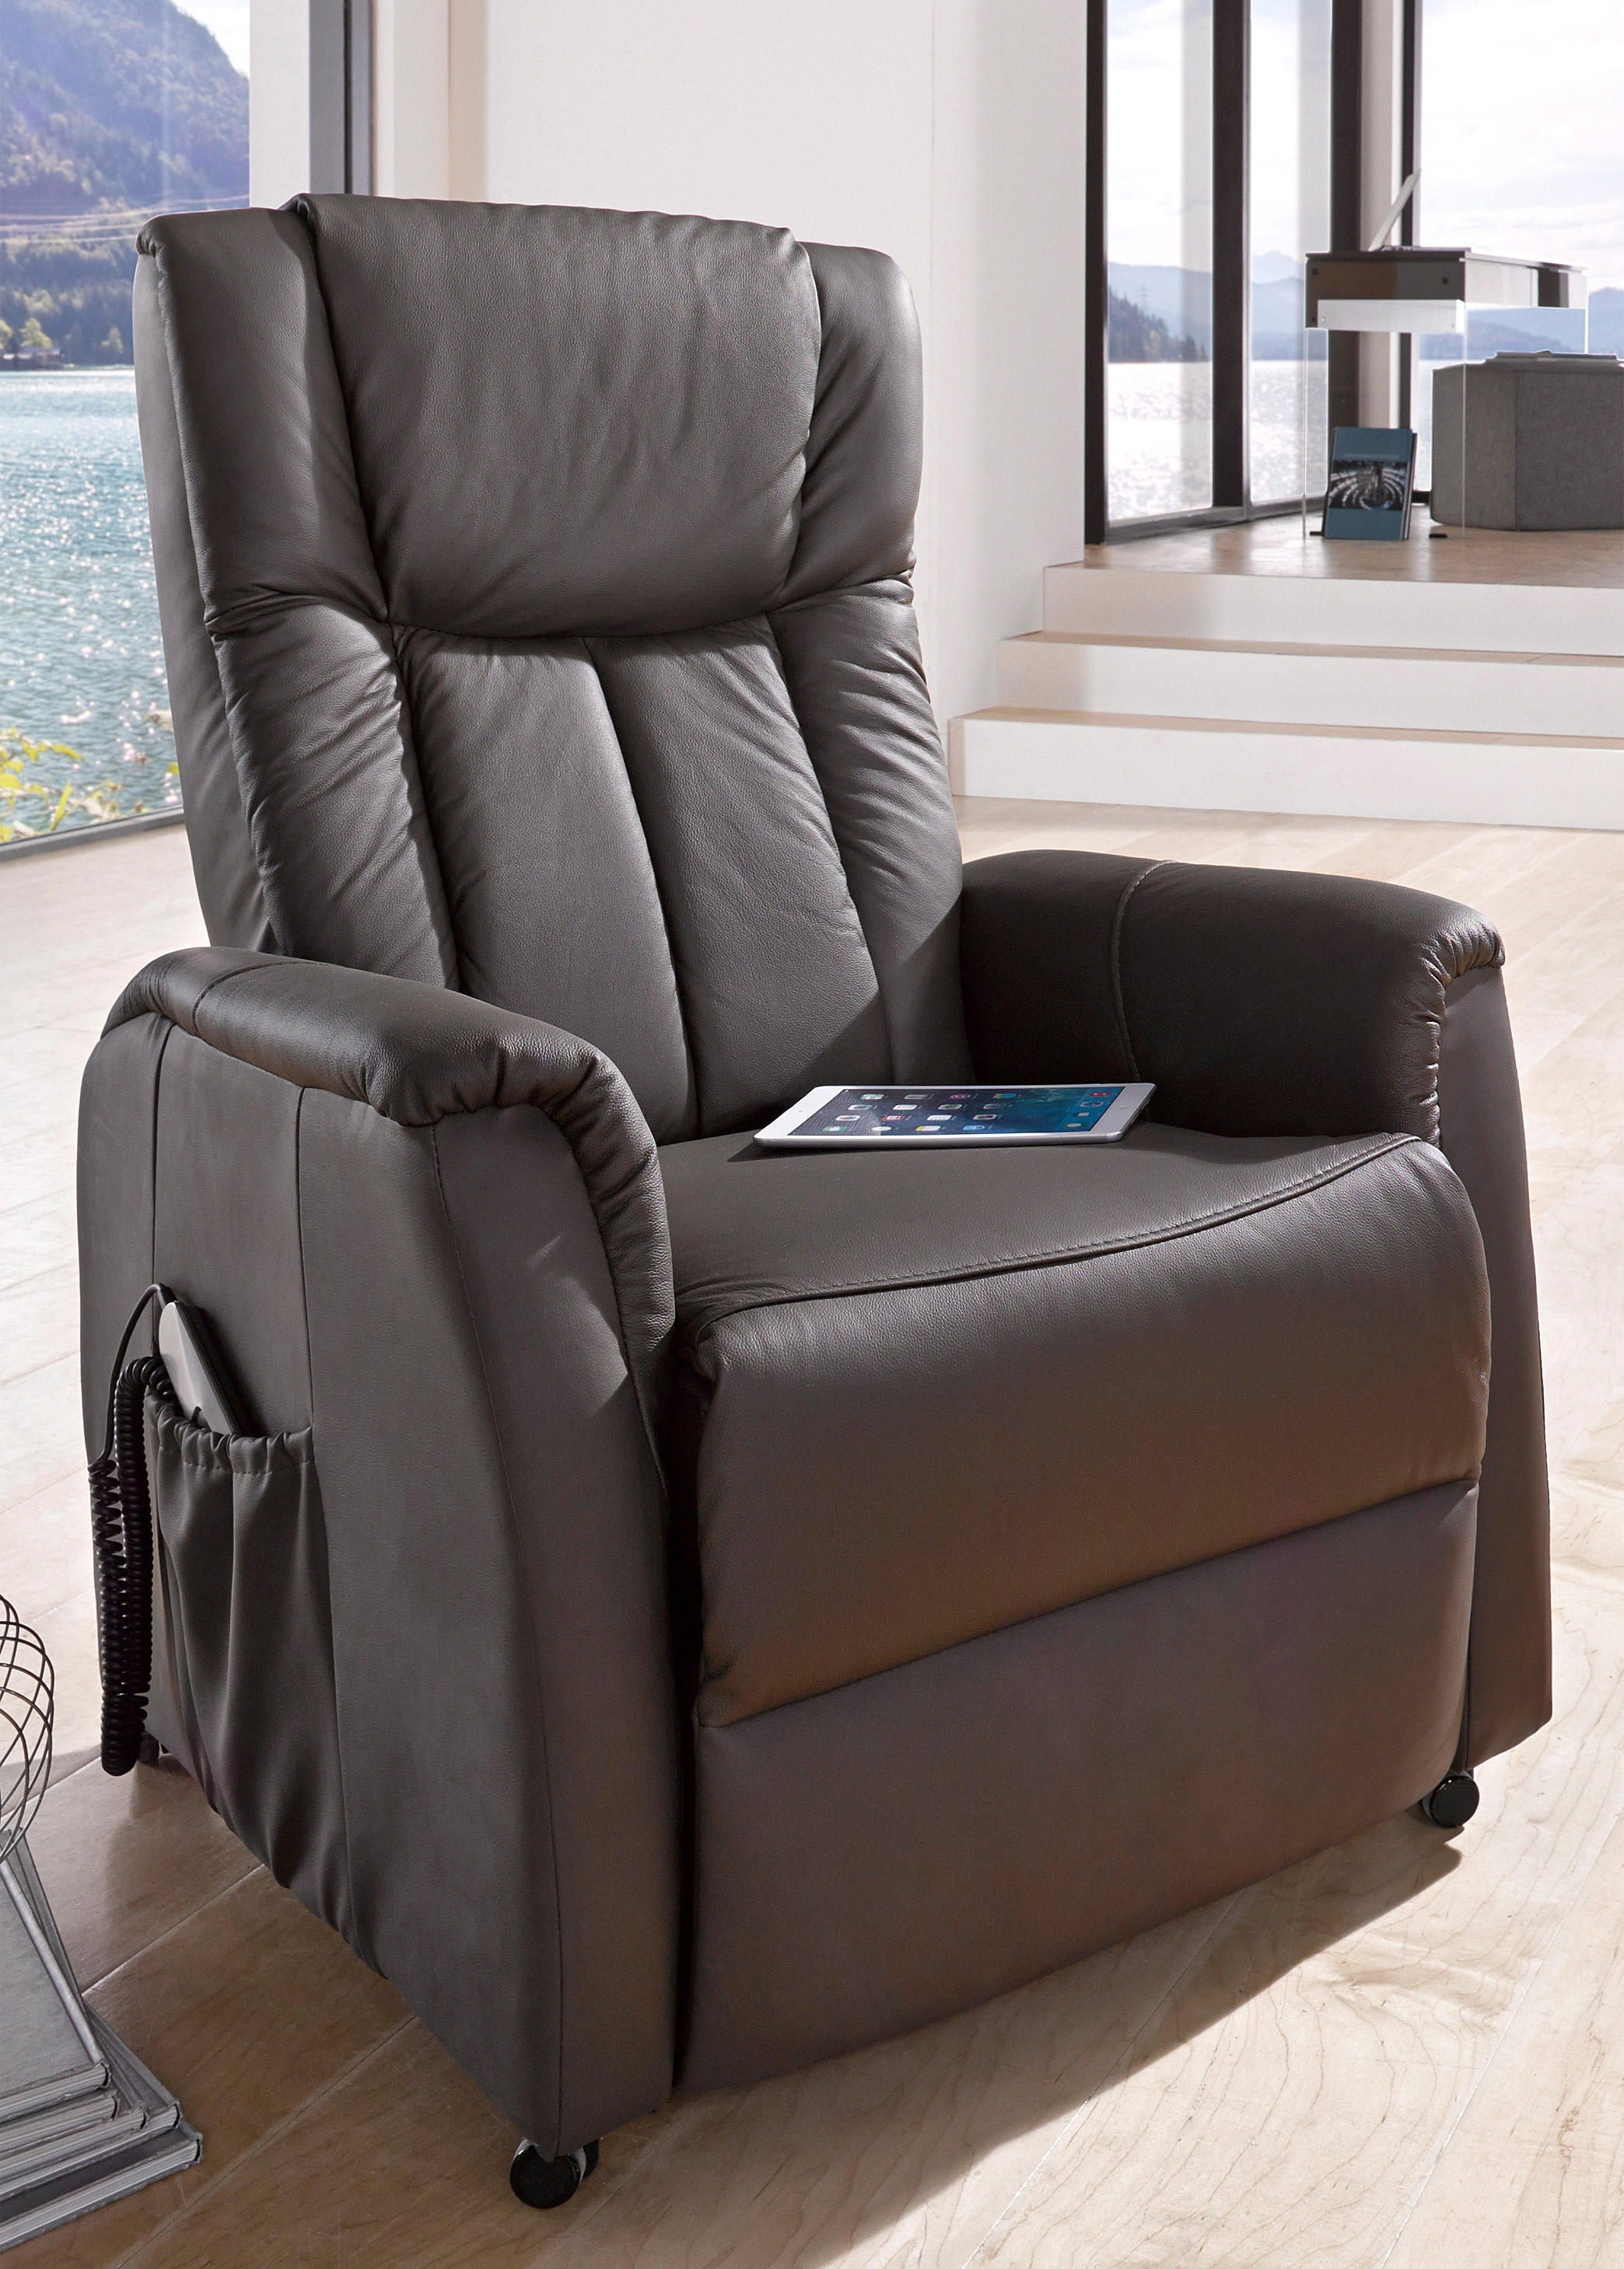 Duo Collection TV-fauteuil met motor en opstahulp nu online bestellen